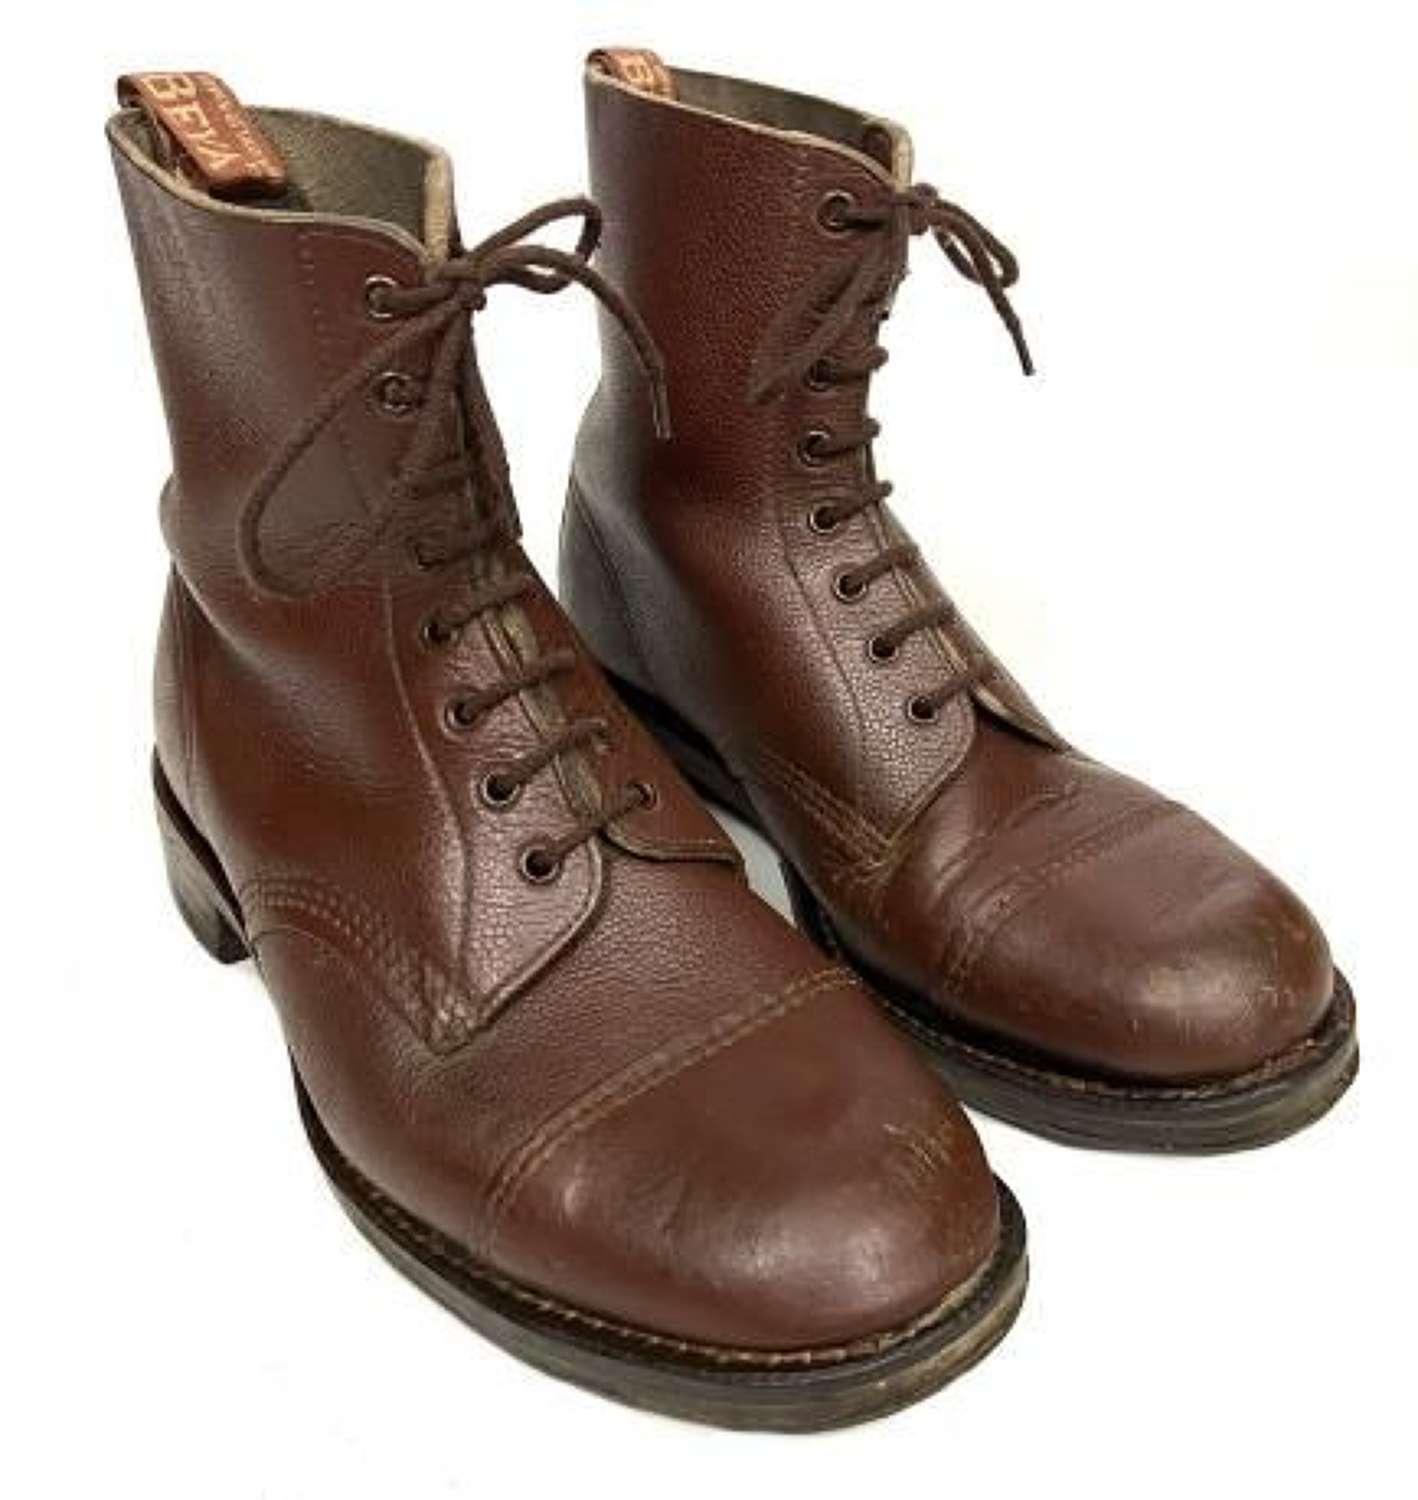 Original 1950s Men's Brown Leather Ankle Boots by 'BEVA' - Size 10